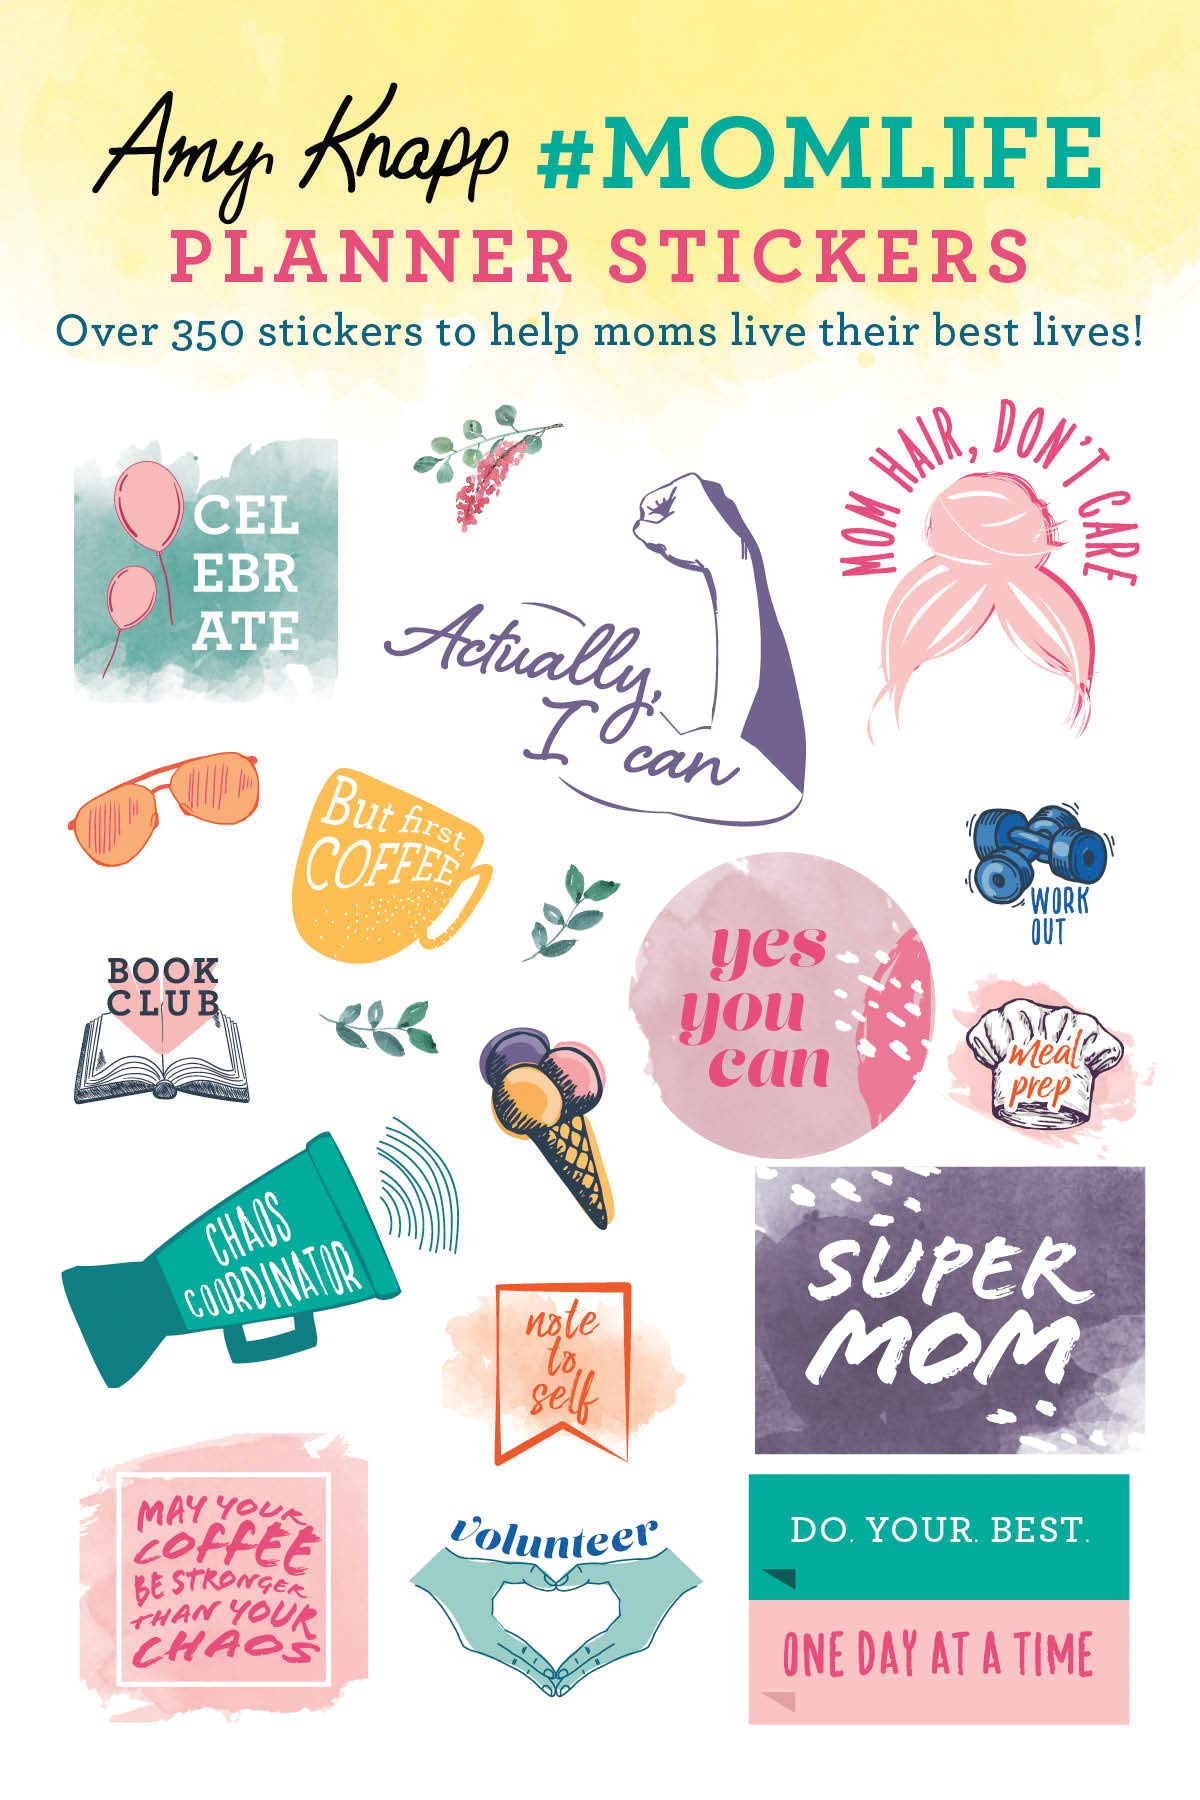 Image for Amy Knapp's #MomLife Planner Stickers: Over 350 inspirational stickers for moms to live their best lives! (Weekly, Calendar and Journal Sticker Sheets, Gifts for Women)